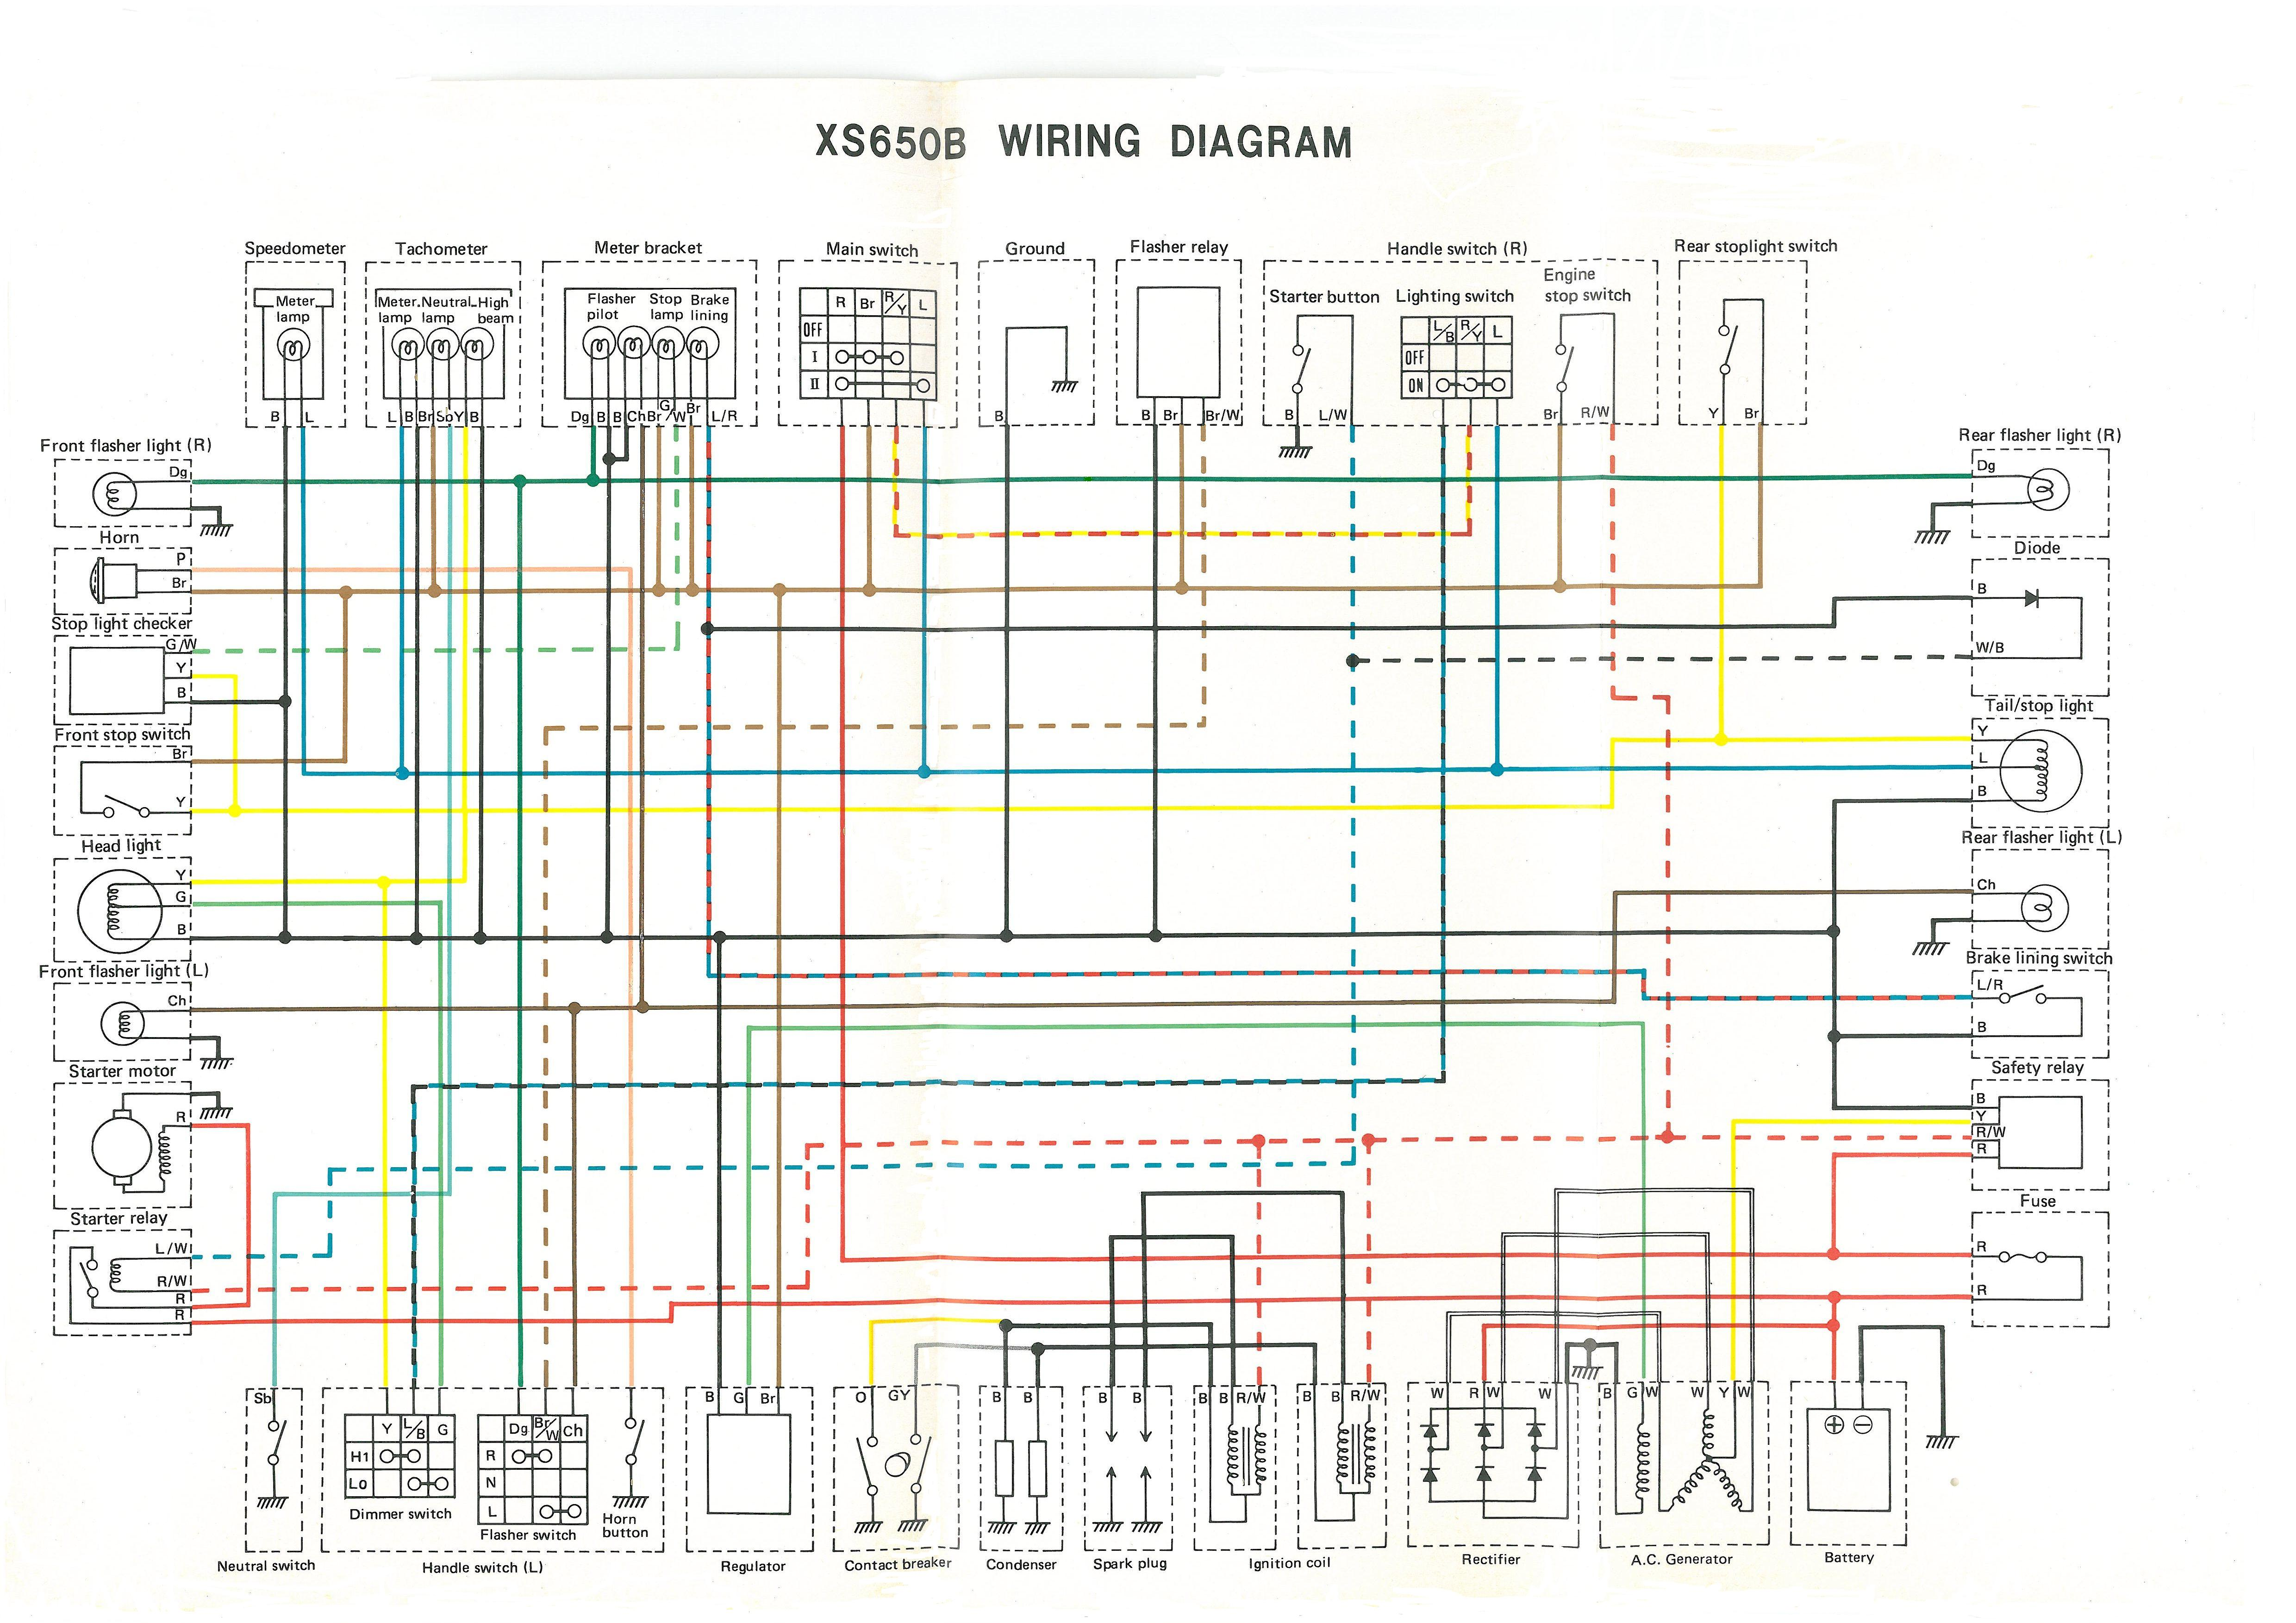 75 xs650b wiring circuit diagram 2?wd10006hd707 xs650 chopper wiring diagram efcaviation com 1978 yamaha xs650 wiring diagram at suagrazia.org